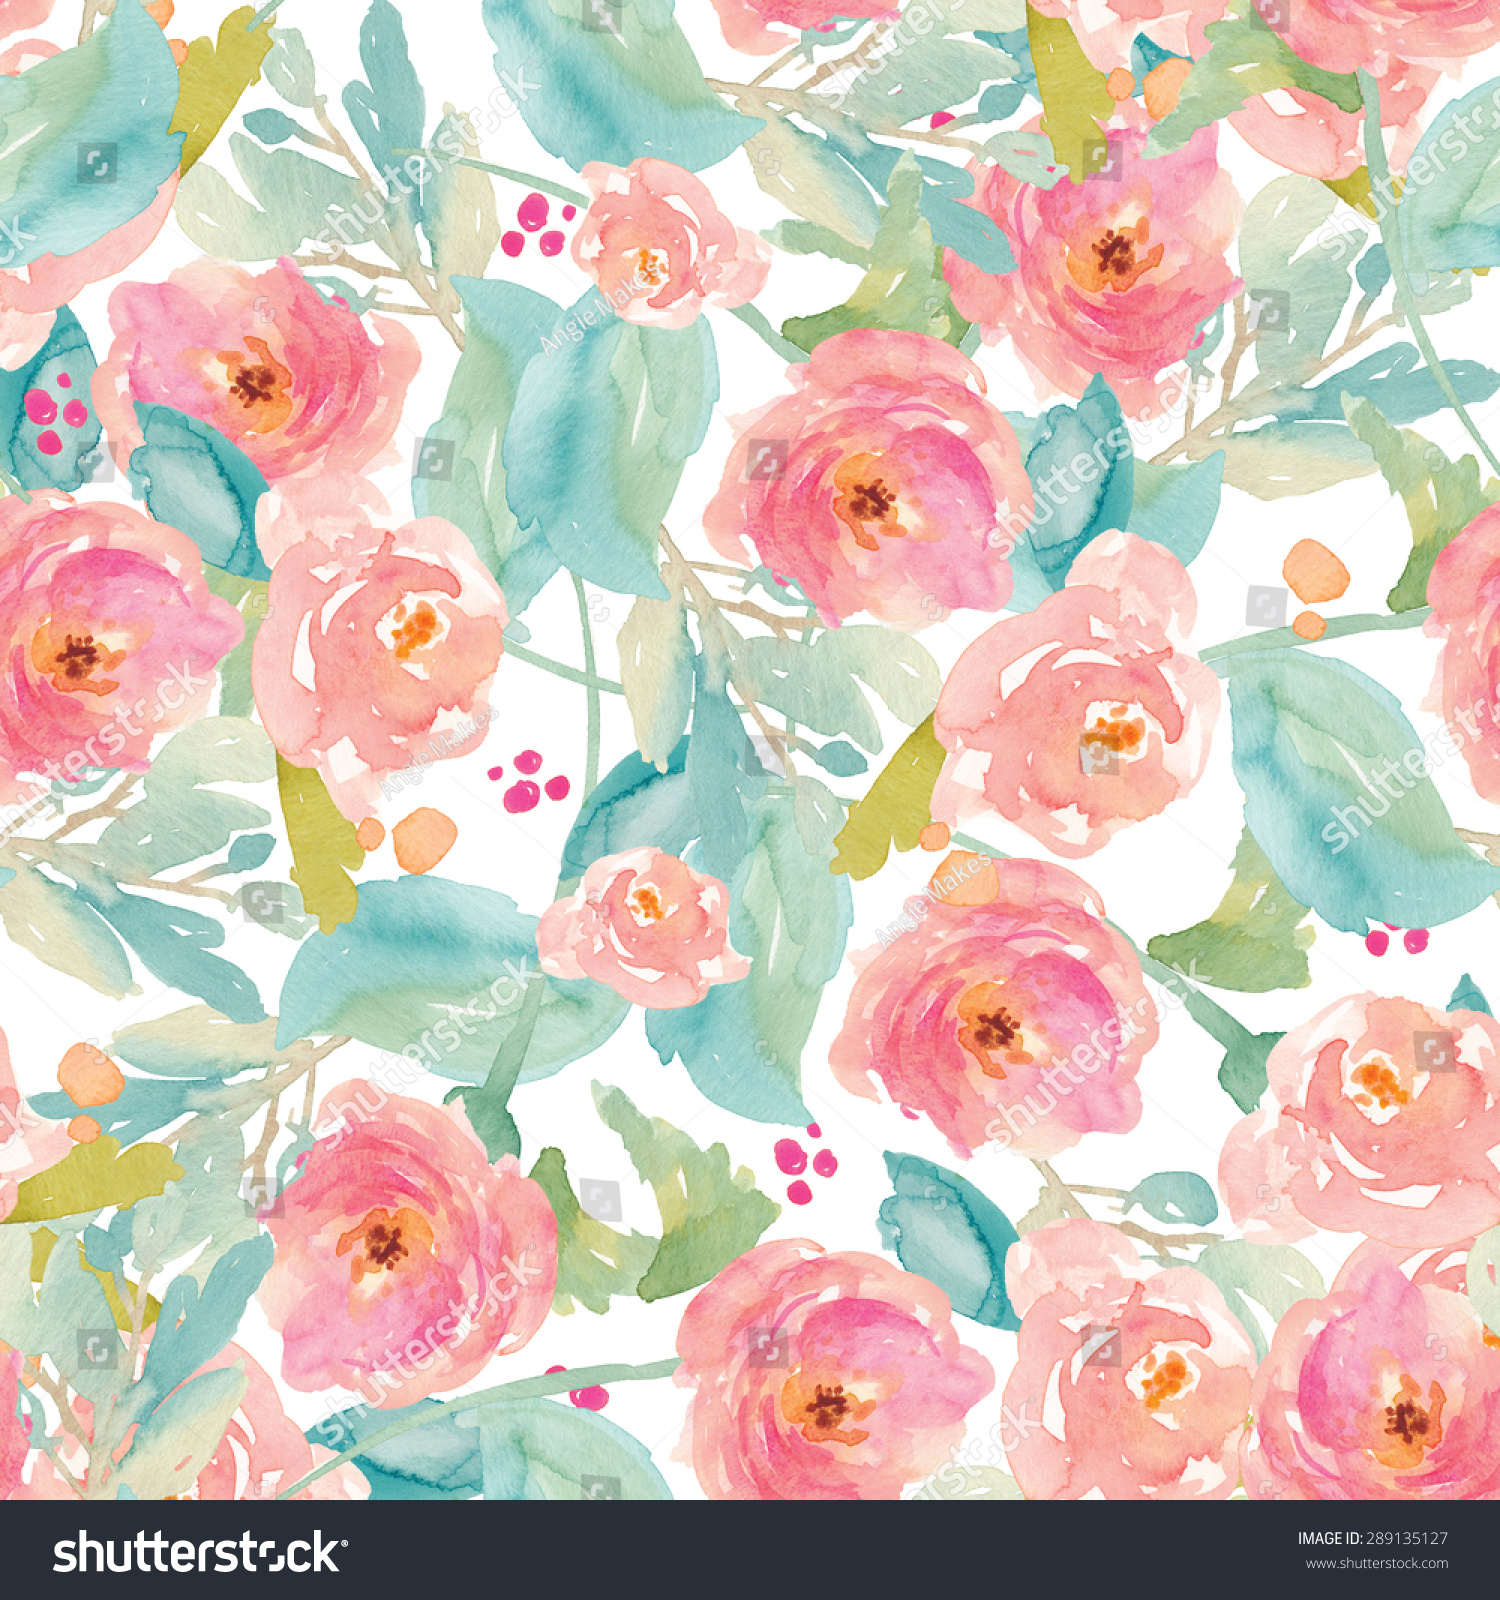 Amazing Tropical Modern Watercolor Flower Pattern Background.